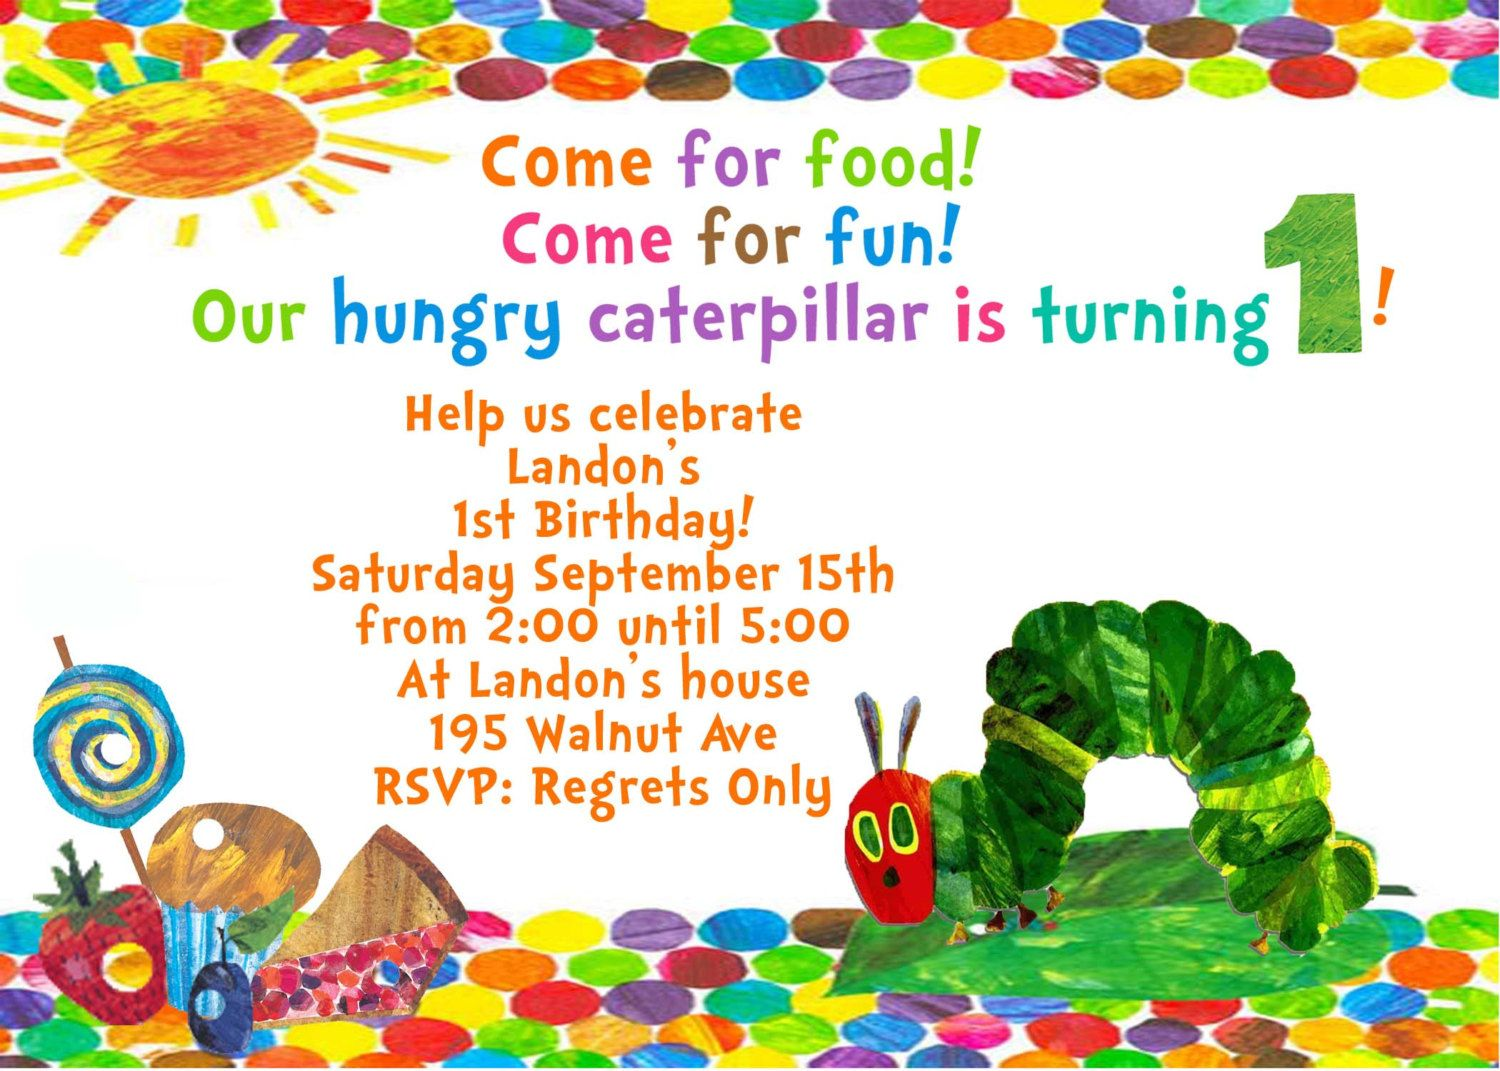 Very hungry caterpillar eric carle birthday invite card can be very hungry caterpillar eric carle birthday invite card can be personalized or customized invitation jpeg printable children holiday 650 via etsy filmwisefo